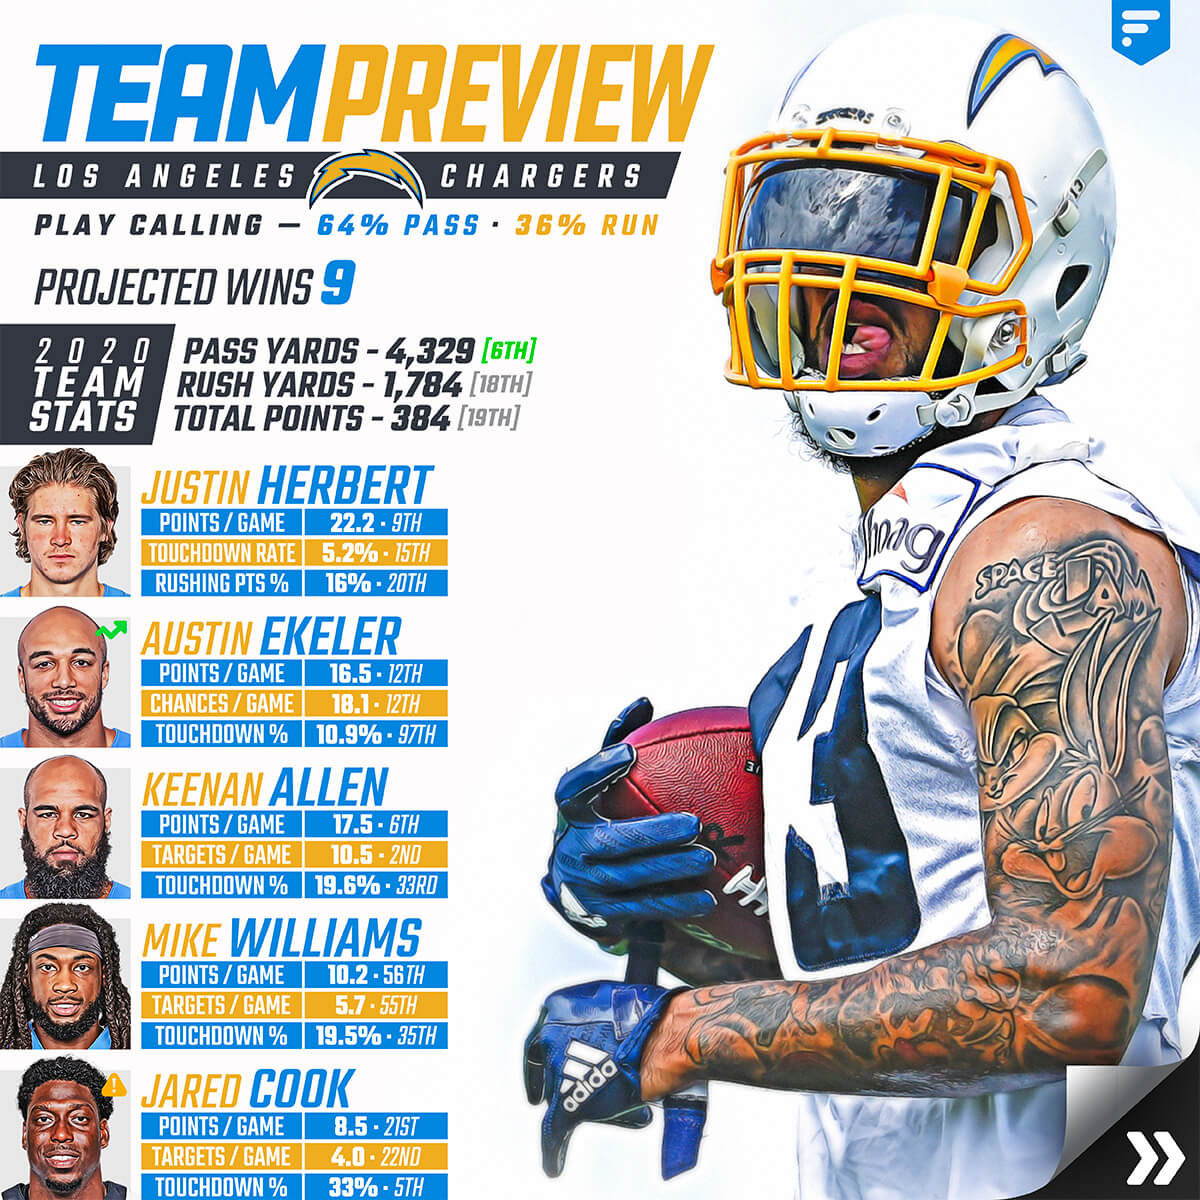 Team Preview Los Angeles Chargers